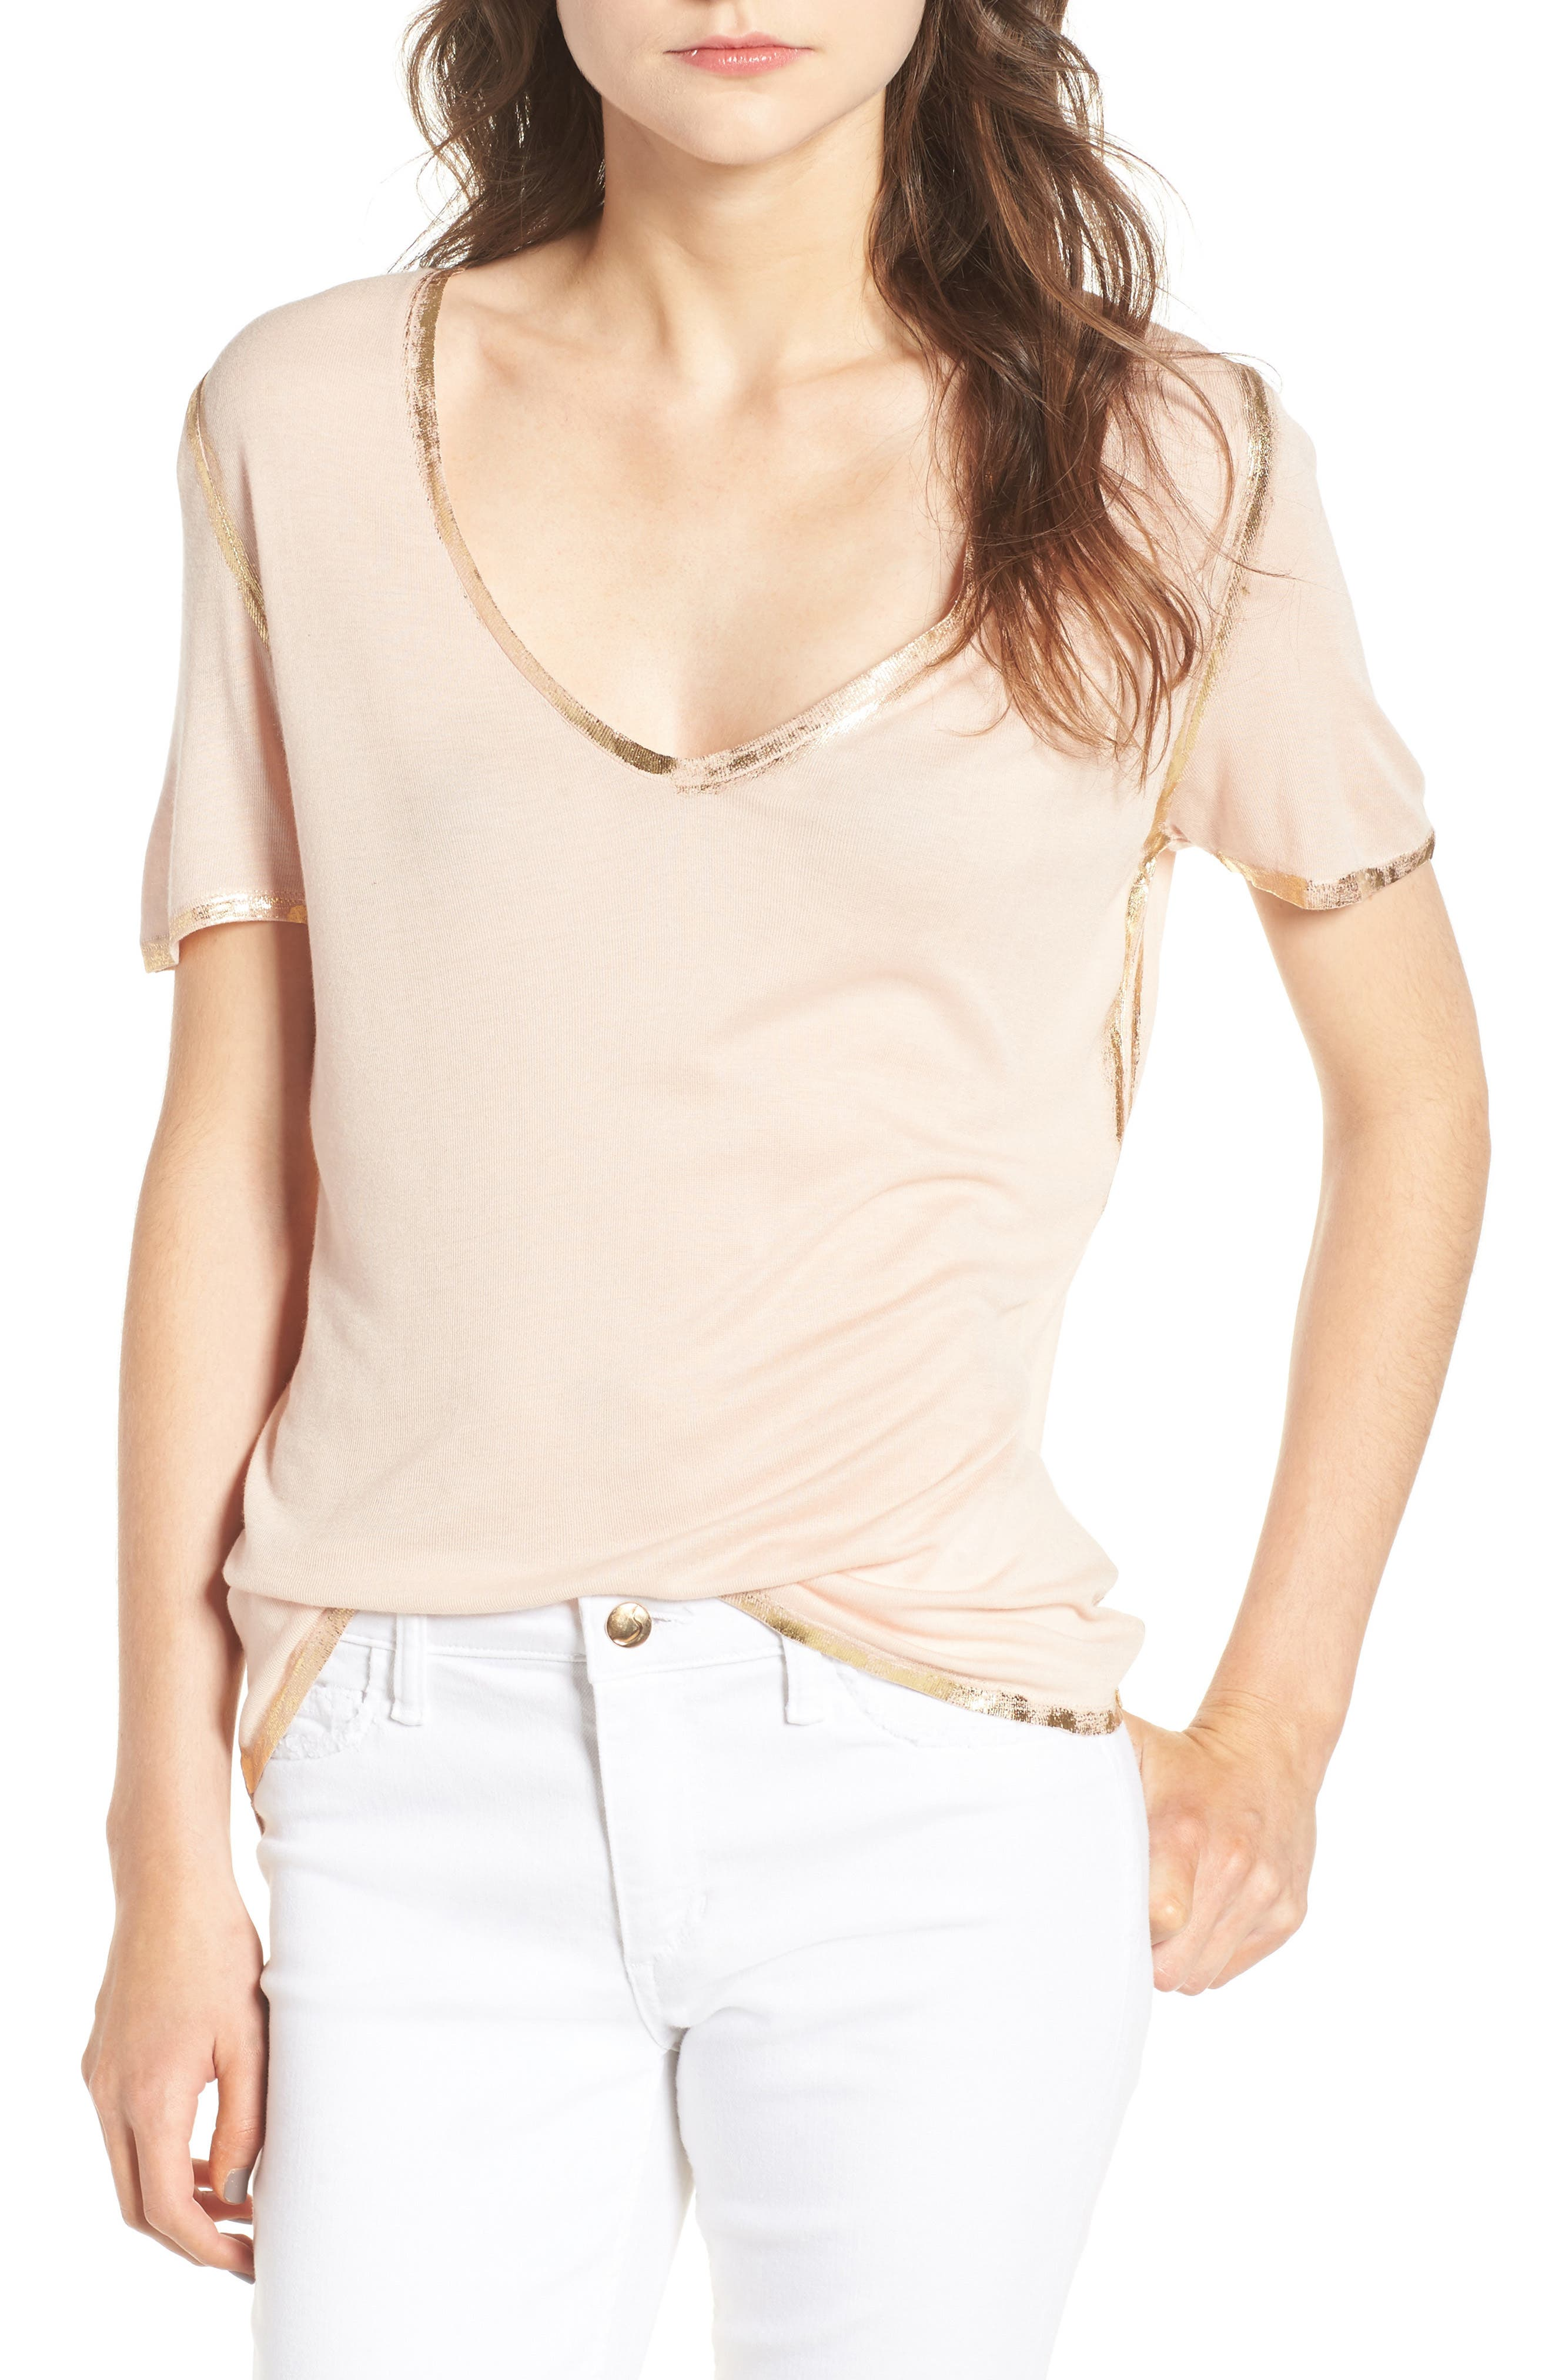 Zadig & Voltaire Tino Foil Trim Tee